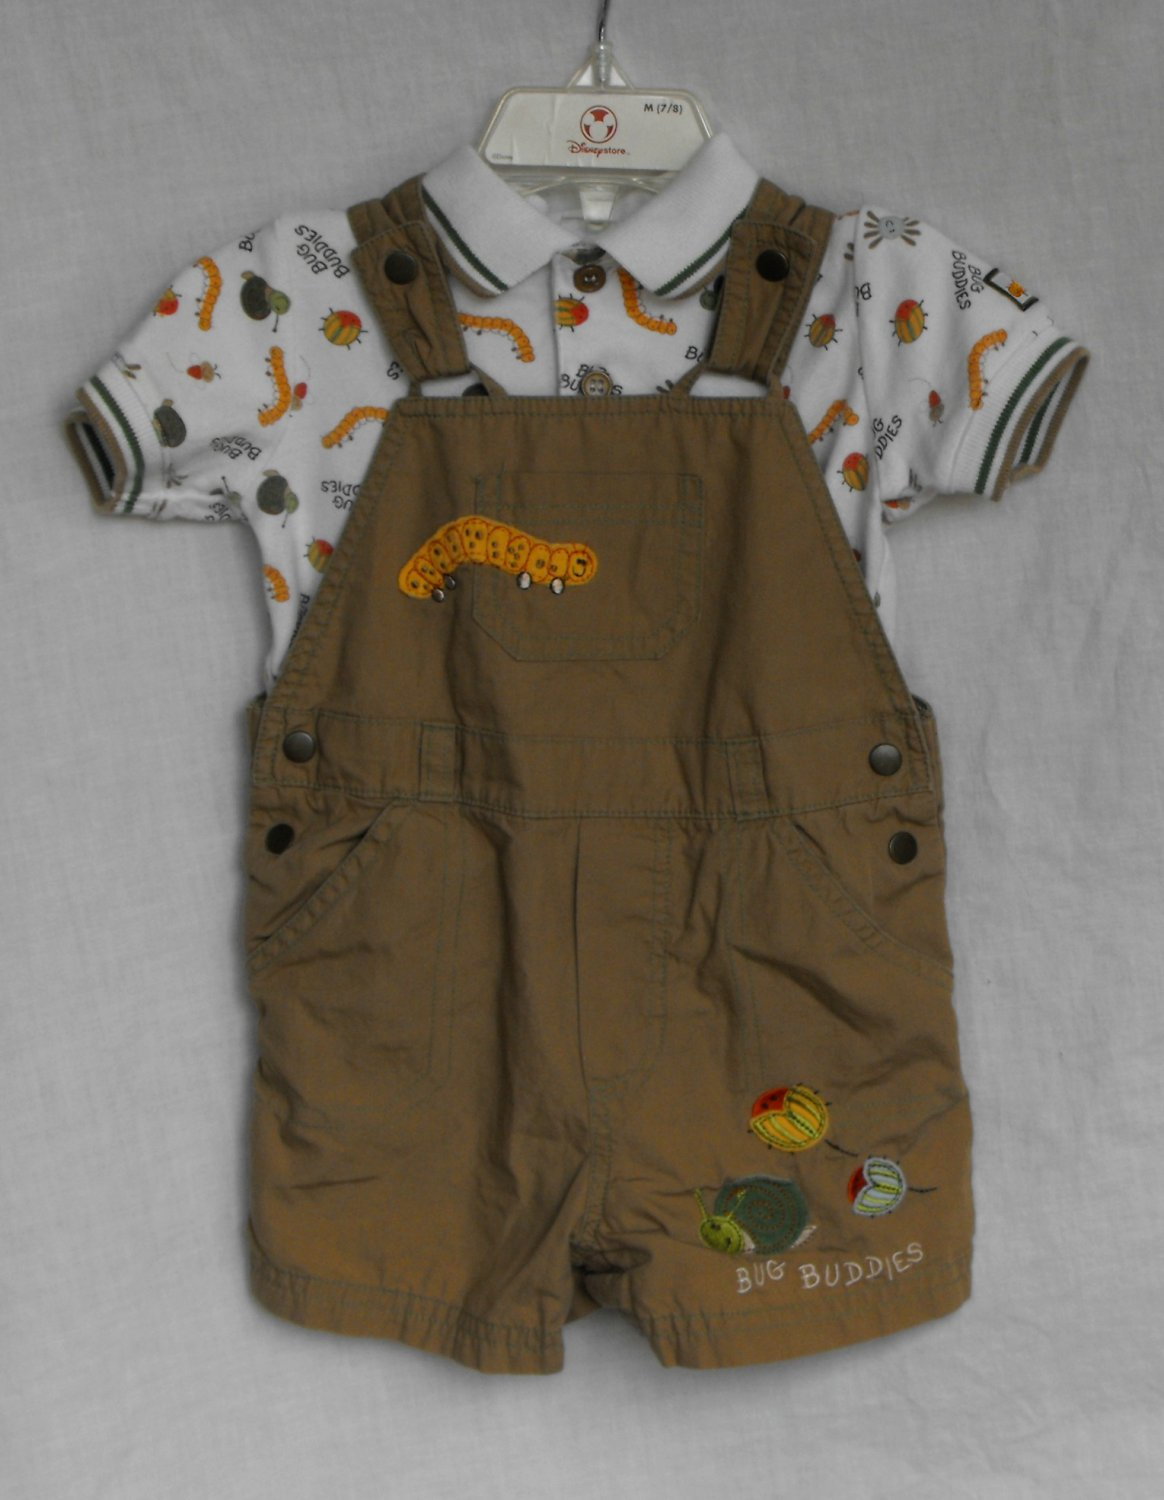 Koala Baby Boys 12 month Overall Shorts Outfit